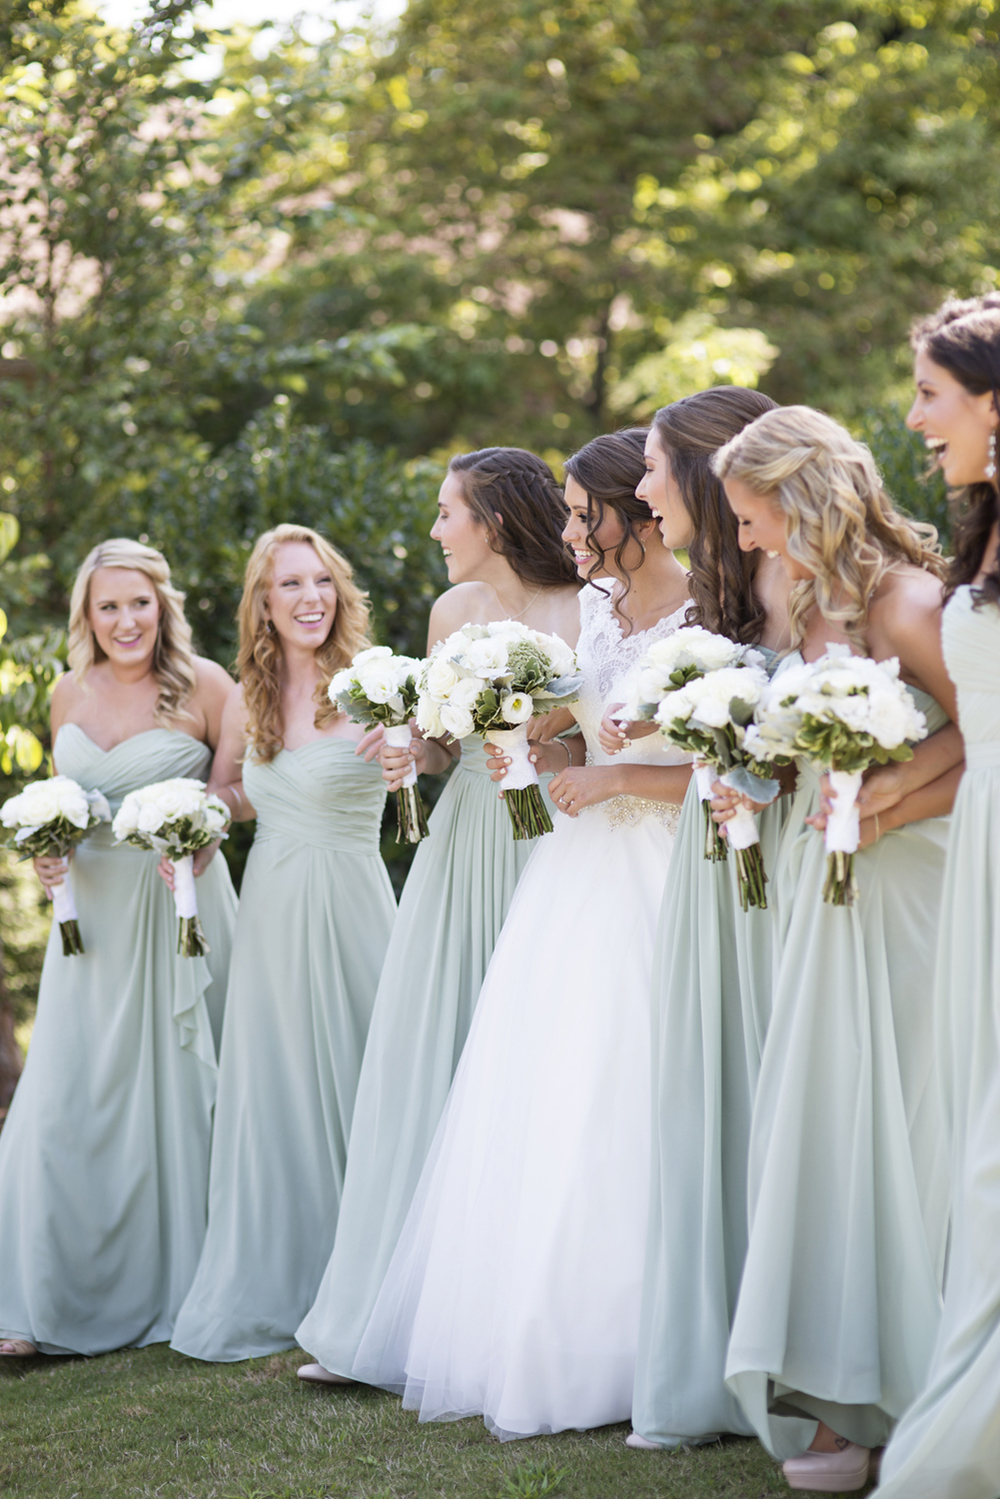 Bridal party portraits in mint green and ivory white dresses  | Portsmouth Woman's Club in Virginia